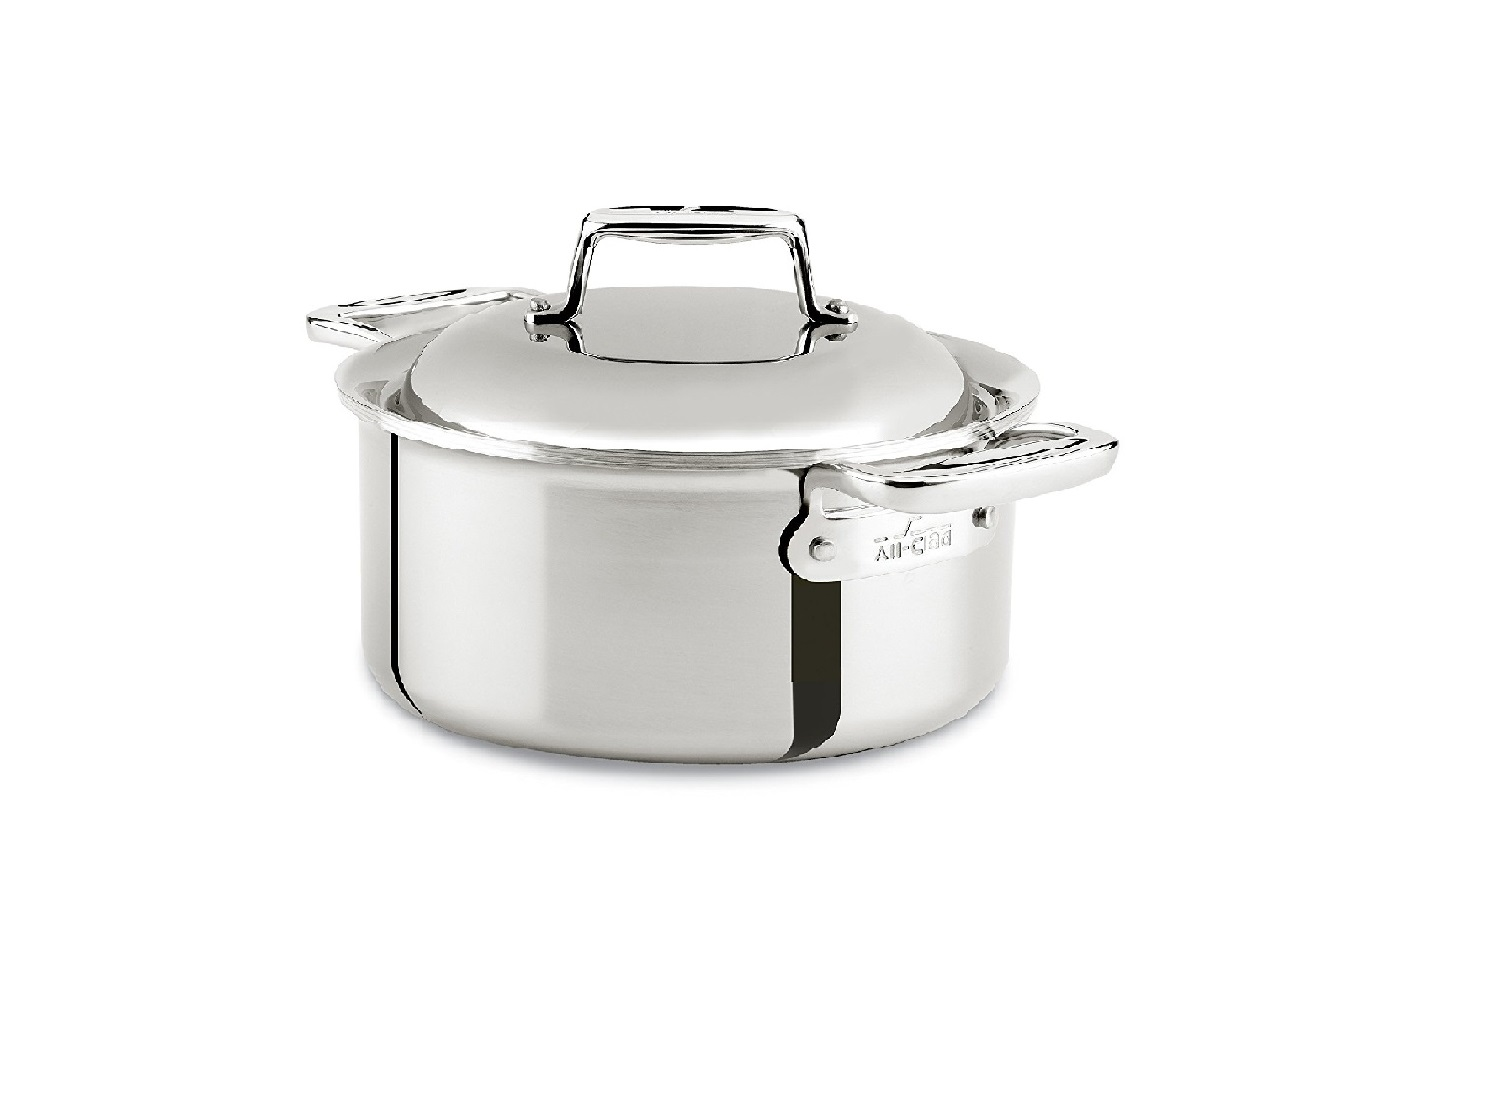 585e9ac0fe5e All-Clad SD7530356 D7 18/10 Stainless Steel 7-Ply Round Oven Dutch Oven,  3.5 Quart